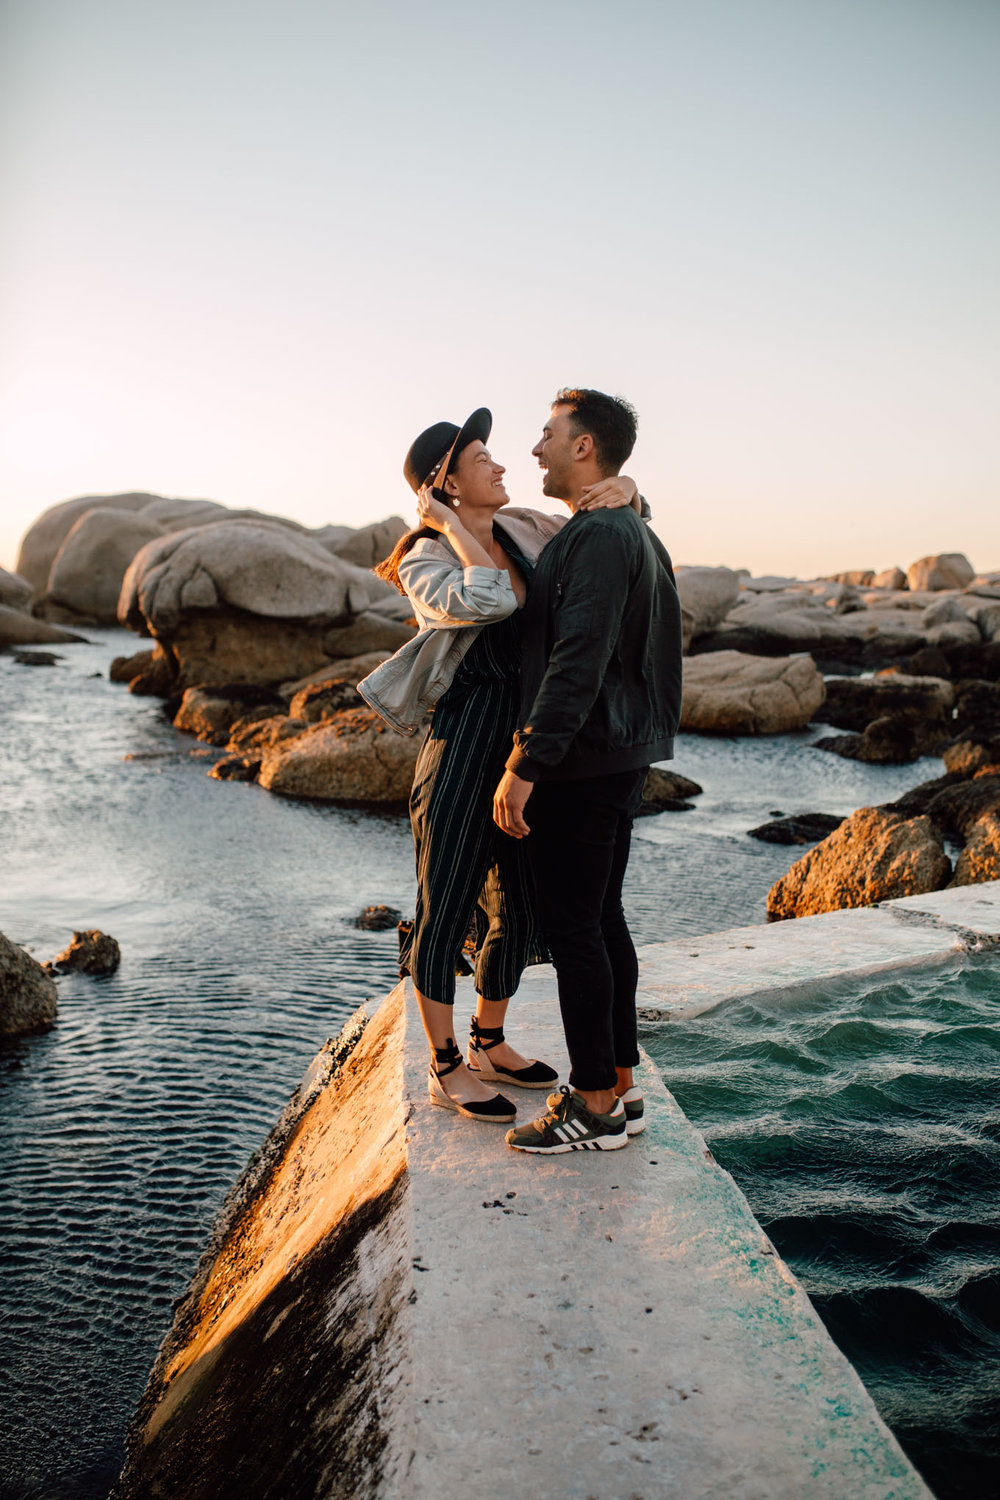 Cape-Town-Pia-Anna-Christian-Wedding-Photography-South-Africa-CJ-46.jpg